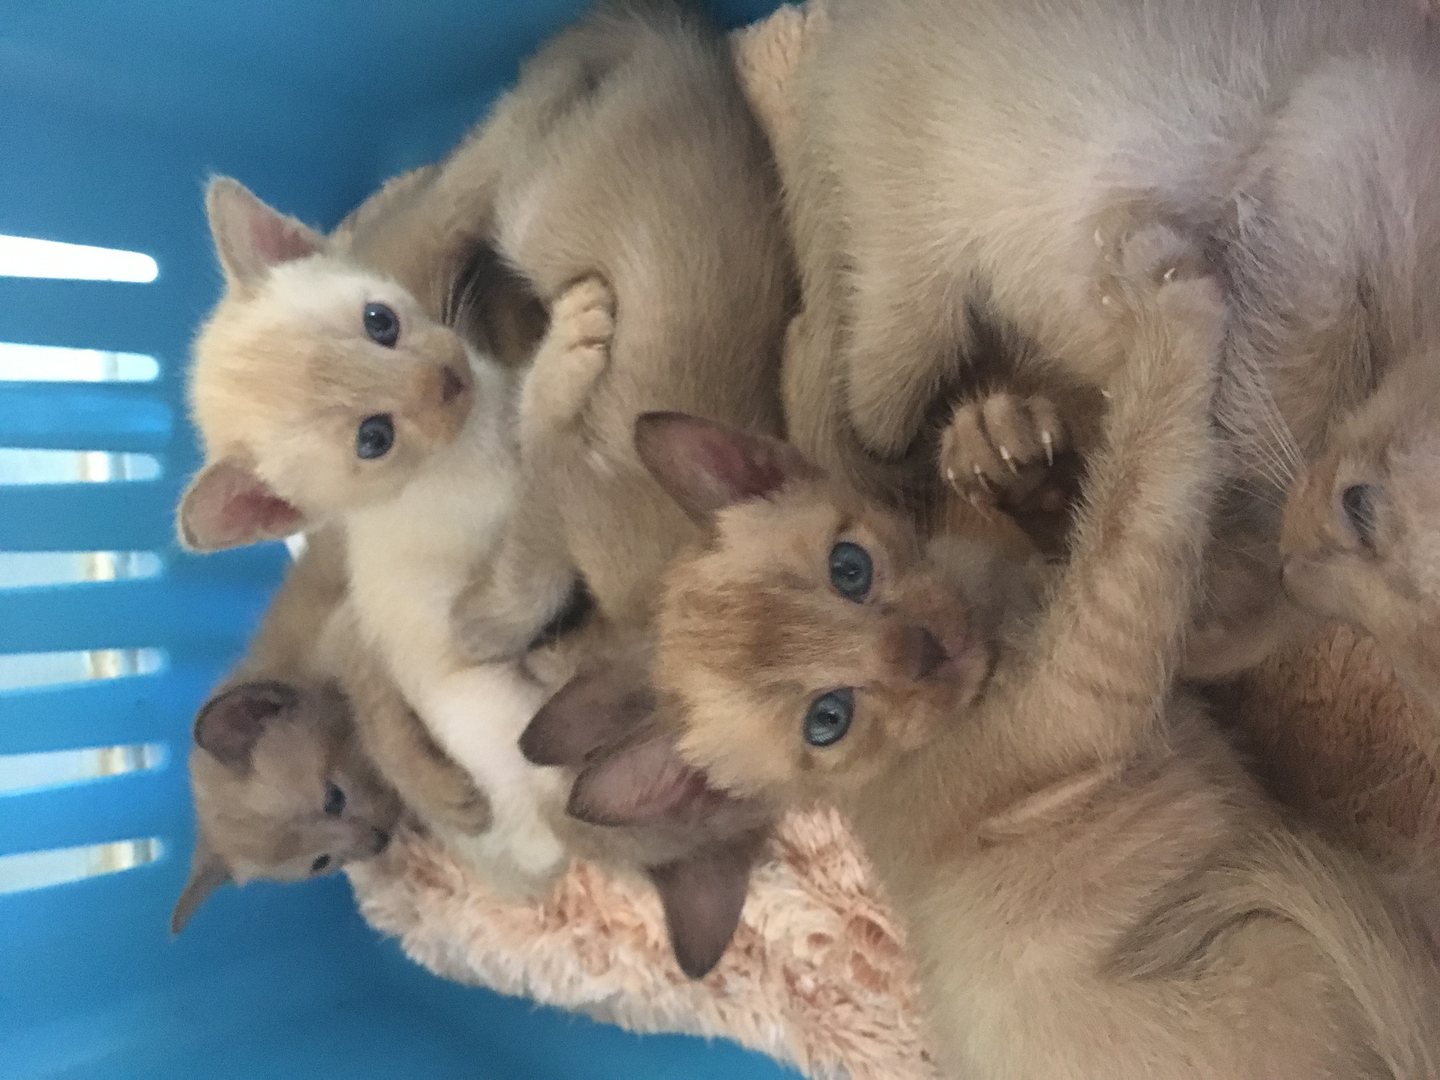 indian Spring Cats - Burmese Siamese Tonkinese Cats